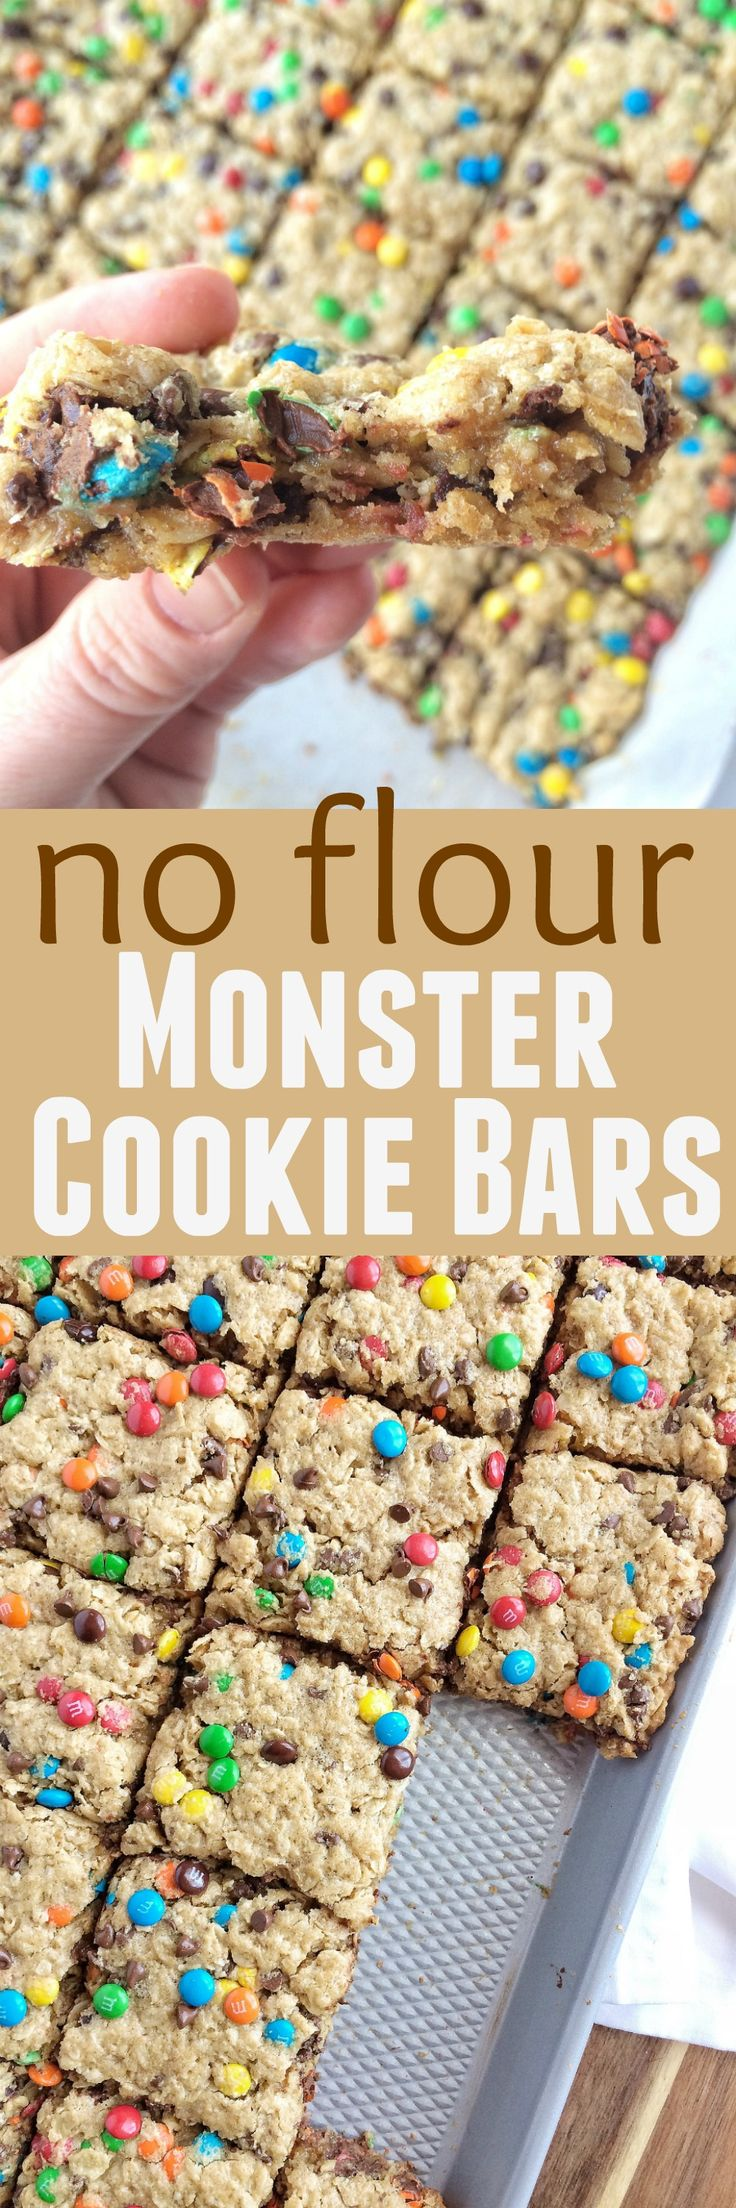 Classic monster cookies loaded with peanut butter, oats, chocolate chips, m&m's. These no flour monster cookie barsbake in a cookie sheet and are the most delicious cookie bars you'll ever have. Plus, there is NO FLOUR in these!